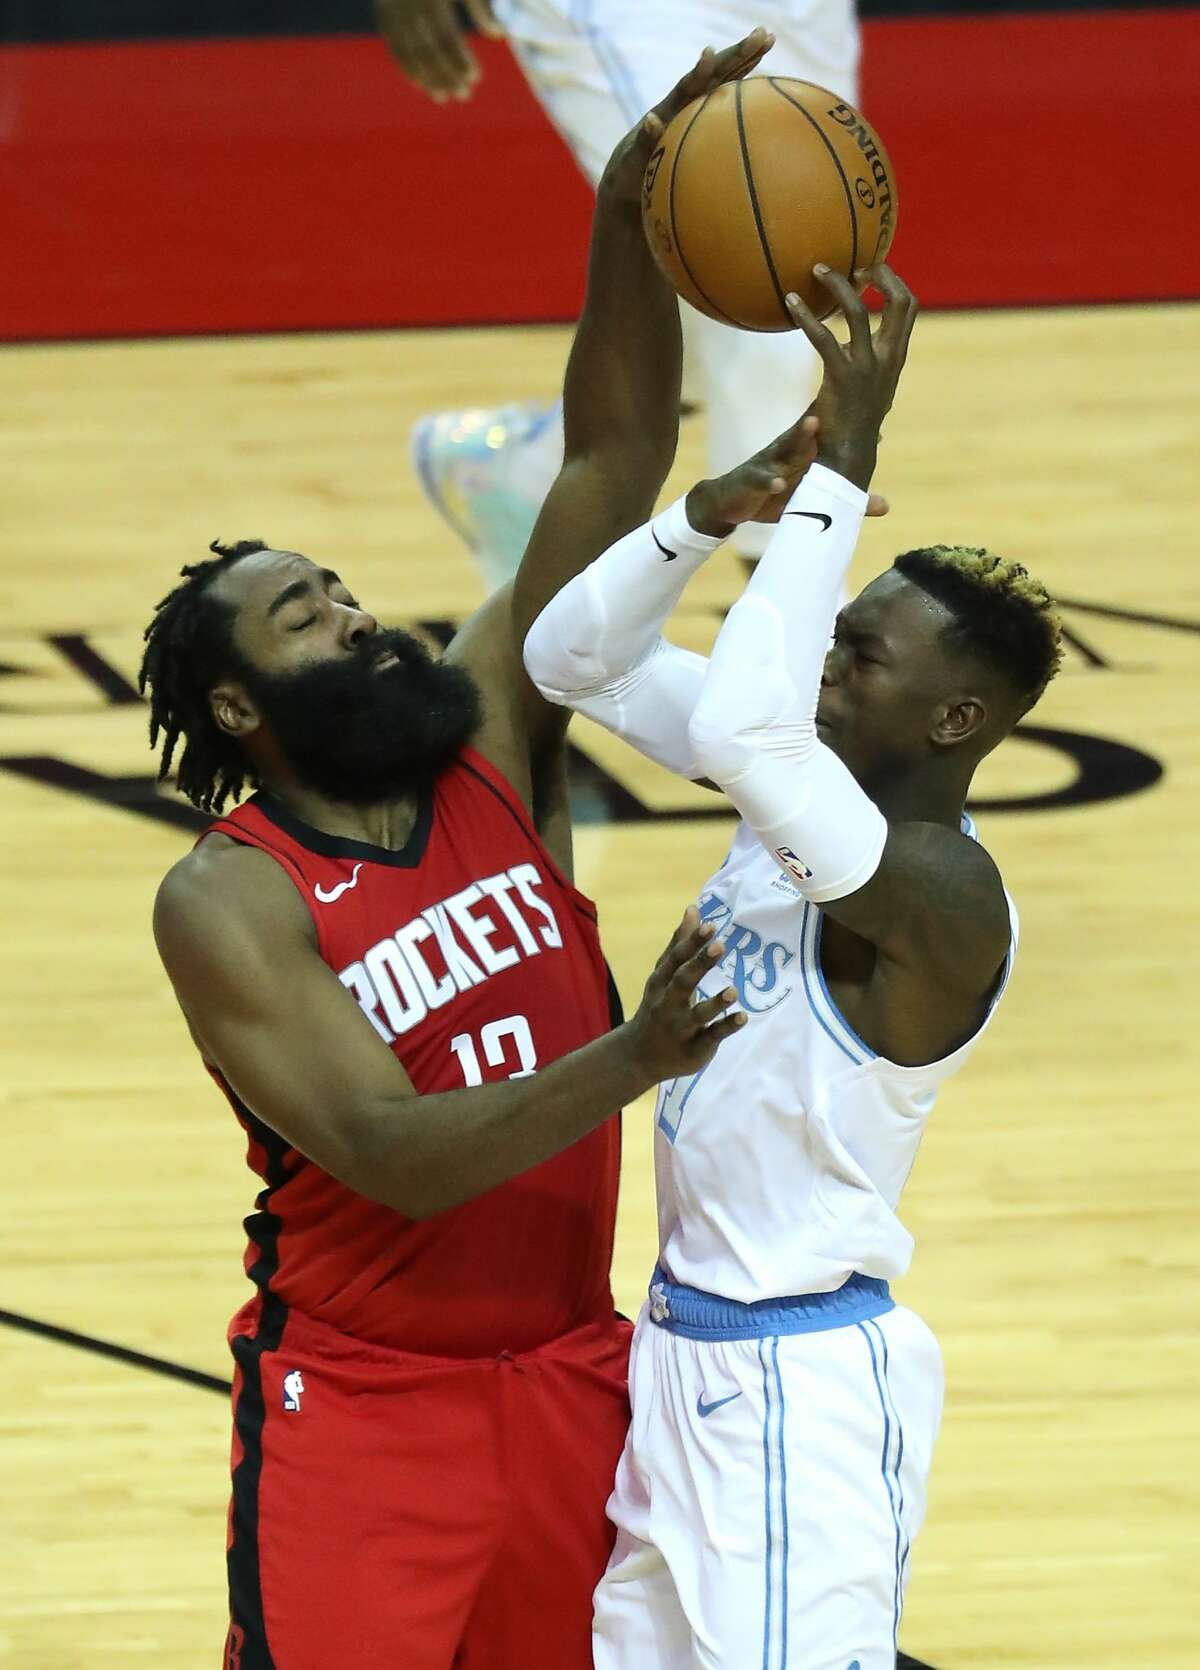 Houston Rockets guard James Harden (13) blocks a shot by Los Angeles Lakers guard Dennis Schroder (17) during the second quarter of an NBA basketball game on Sunday, Jan. 10, 2021, at Toyota Center in Houston.